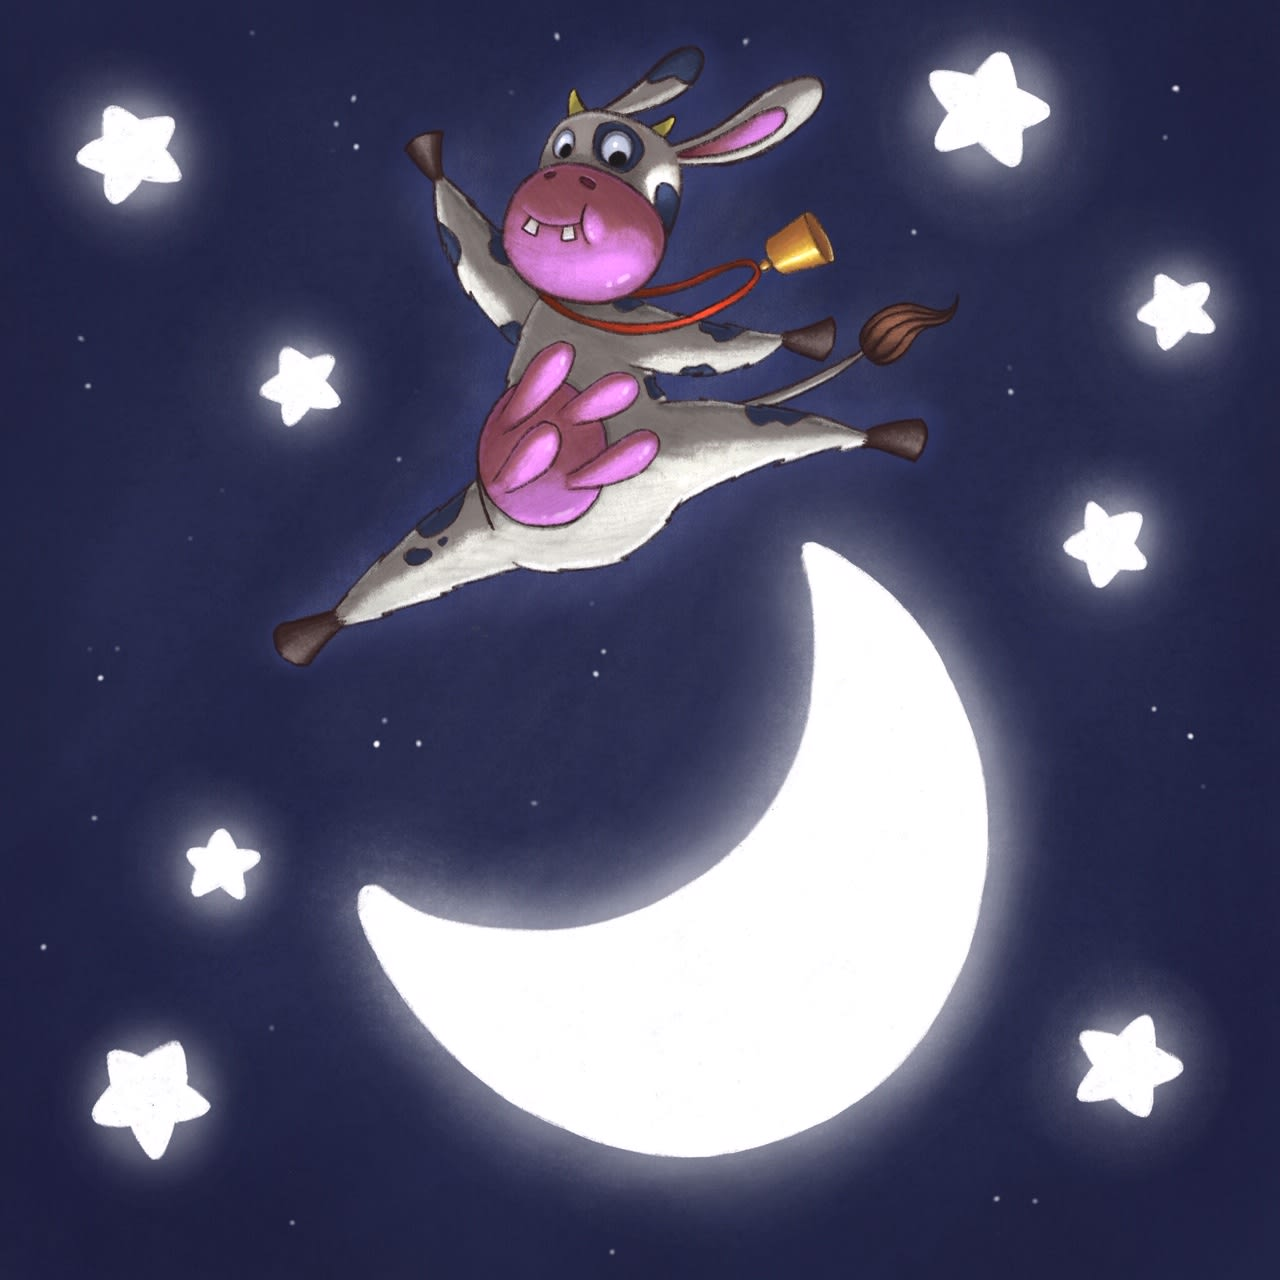 The Cow Jumped Over The Moon!